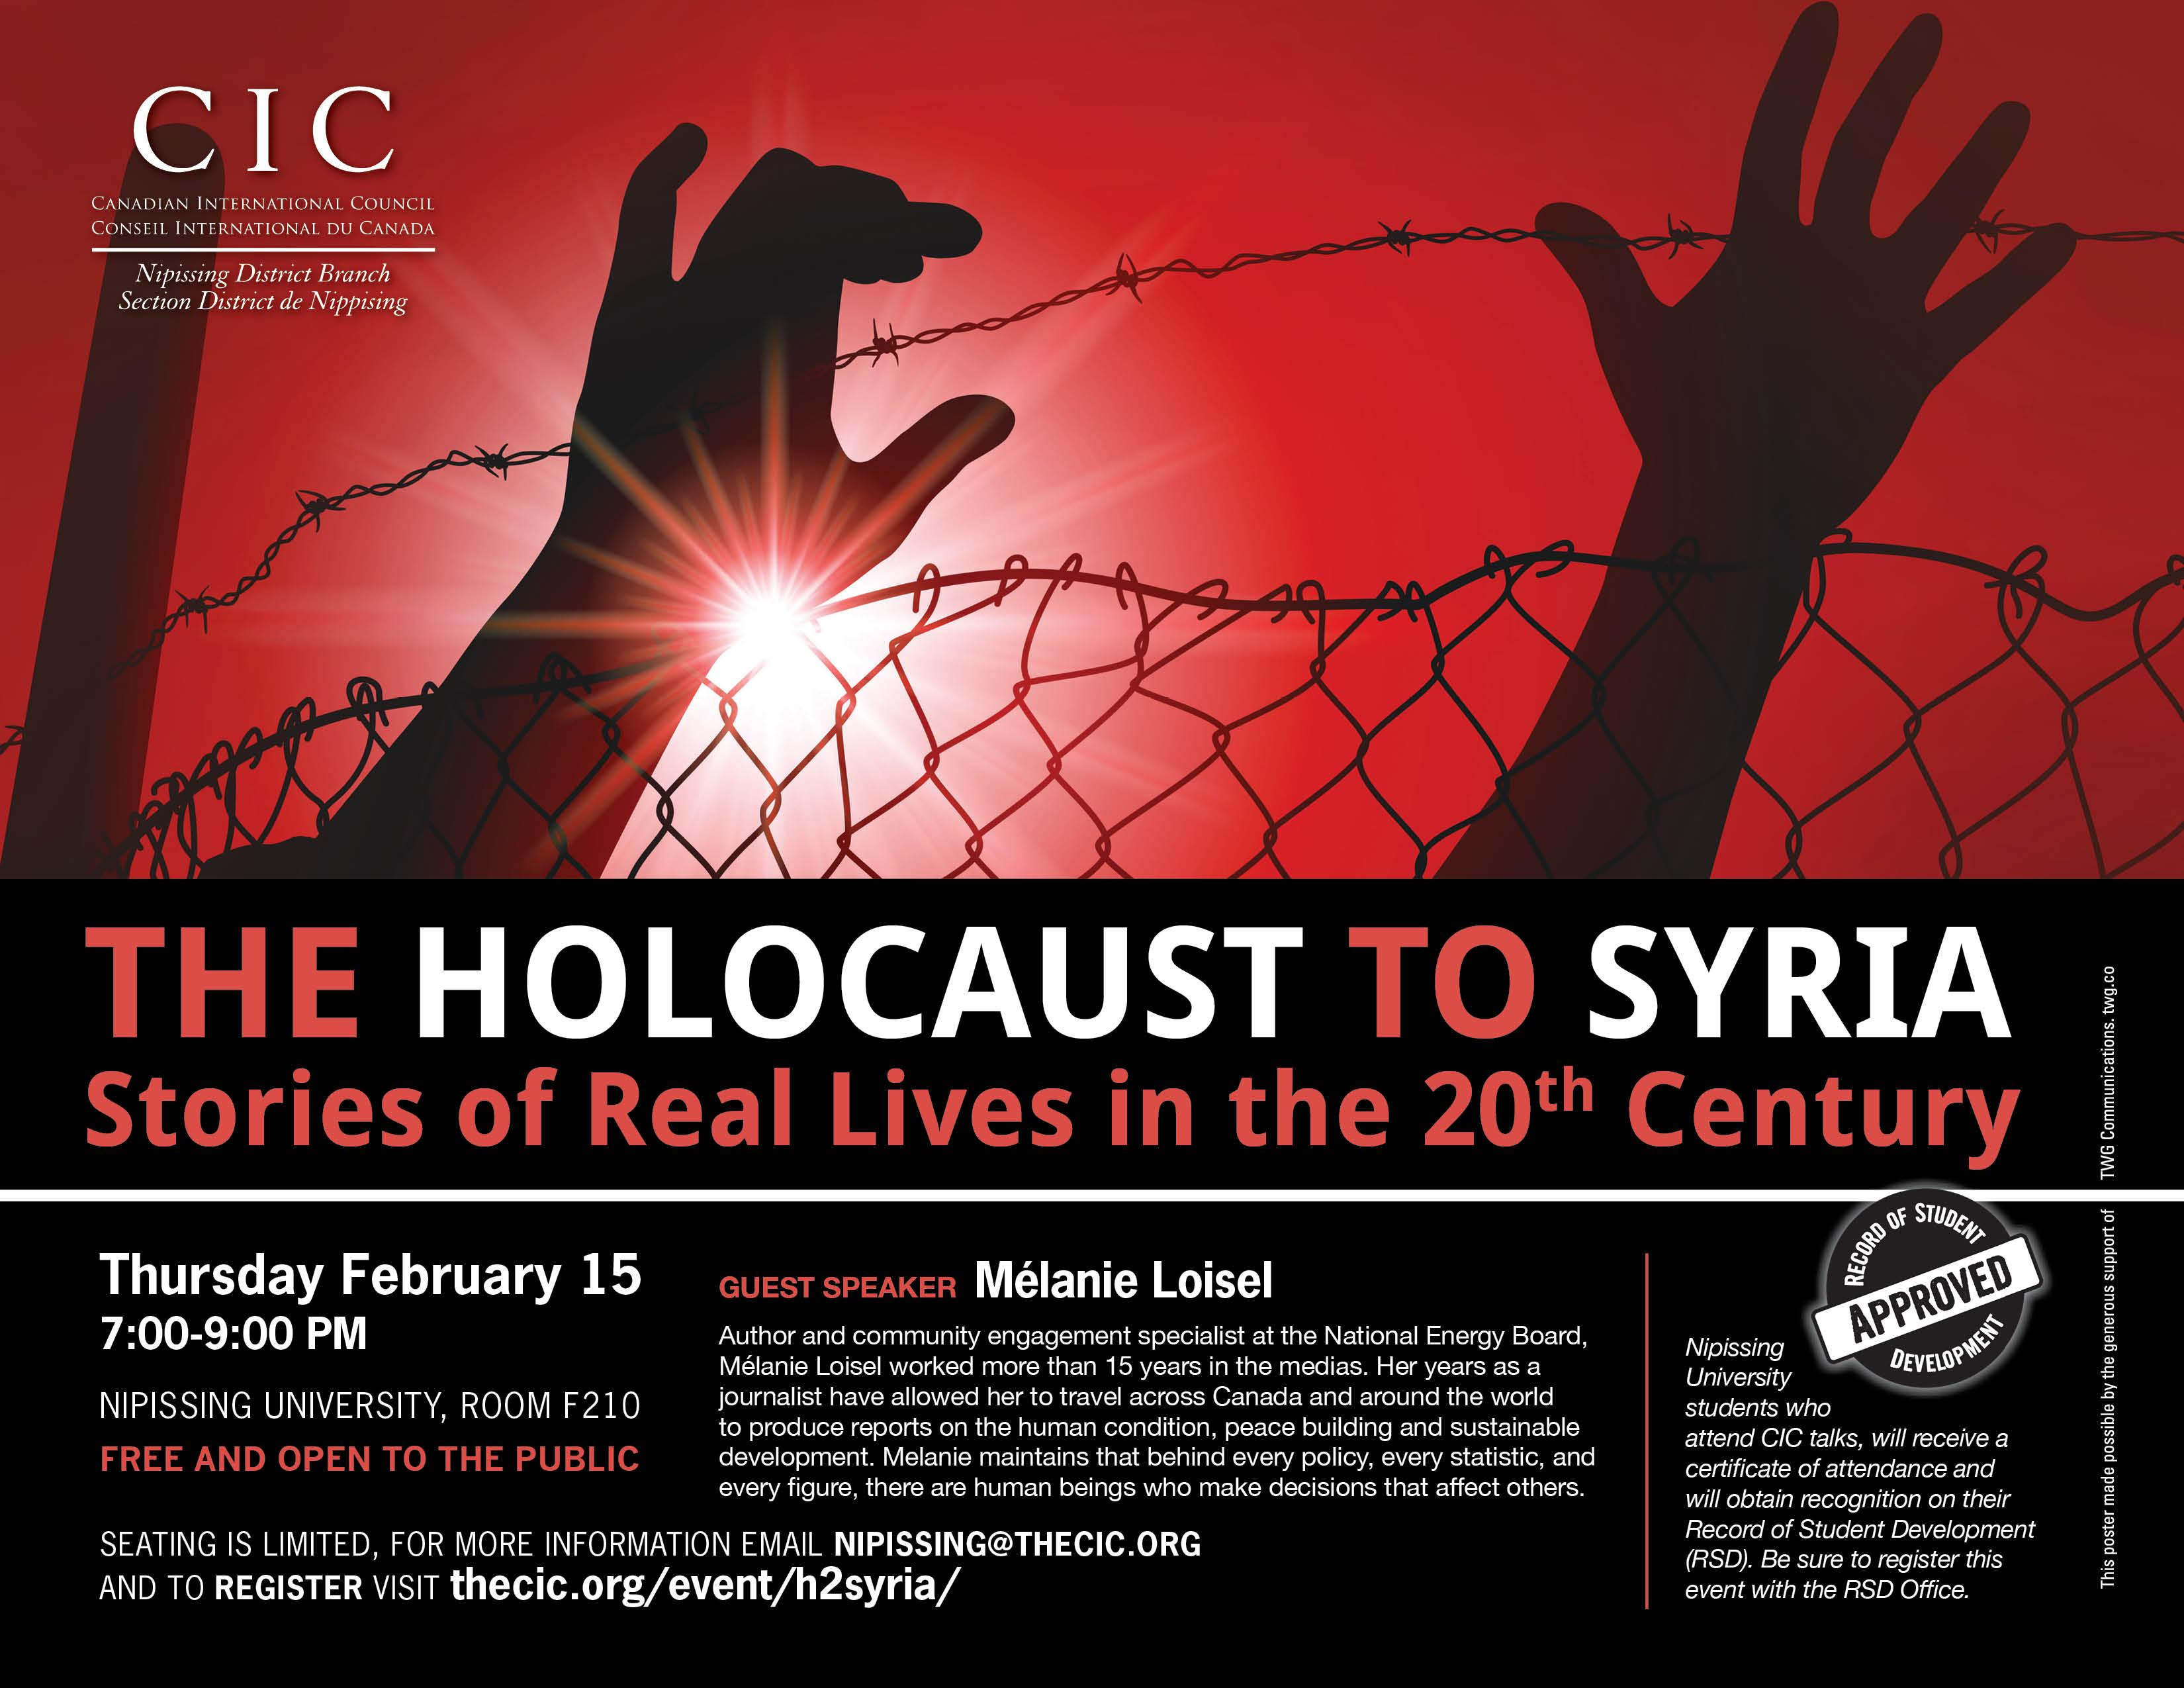 the effects of the holocaust in the 20th century Fdu magazine, faculty look back at 20th century the 20th century: one defining moment fdu faculty ponder the most pivotal events of the last 100 years while.